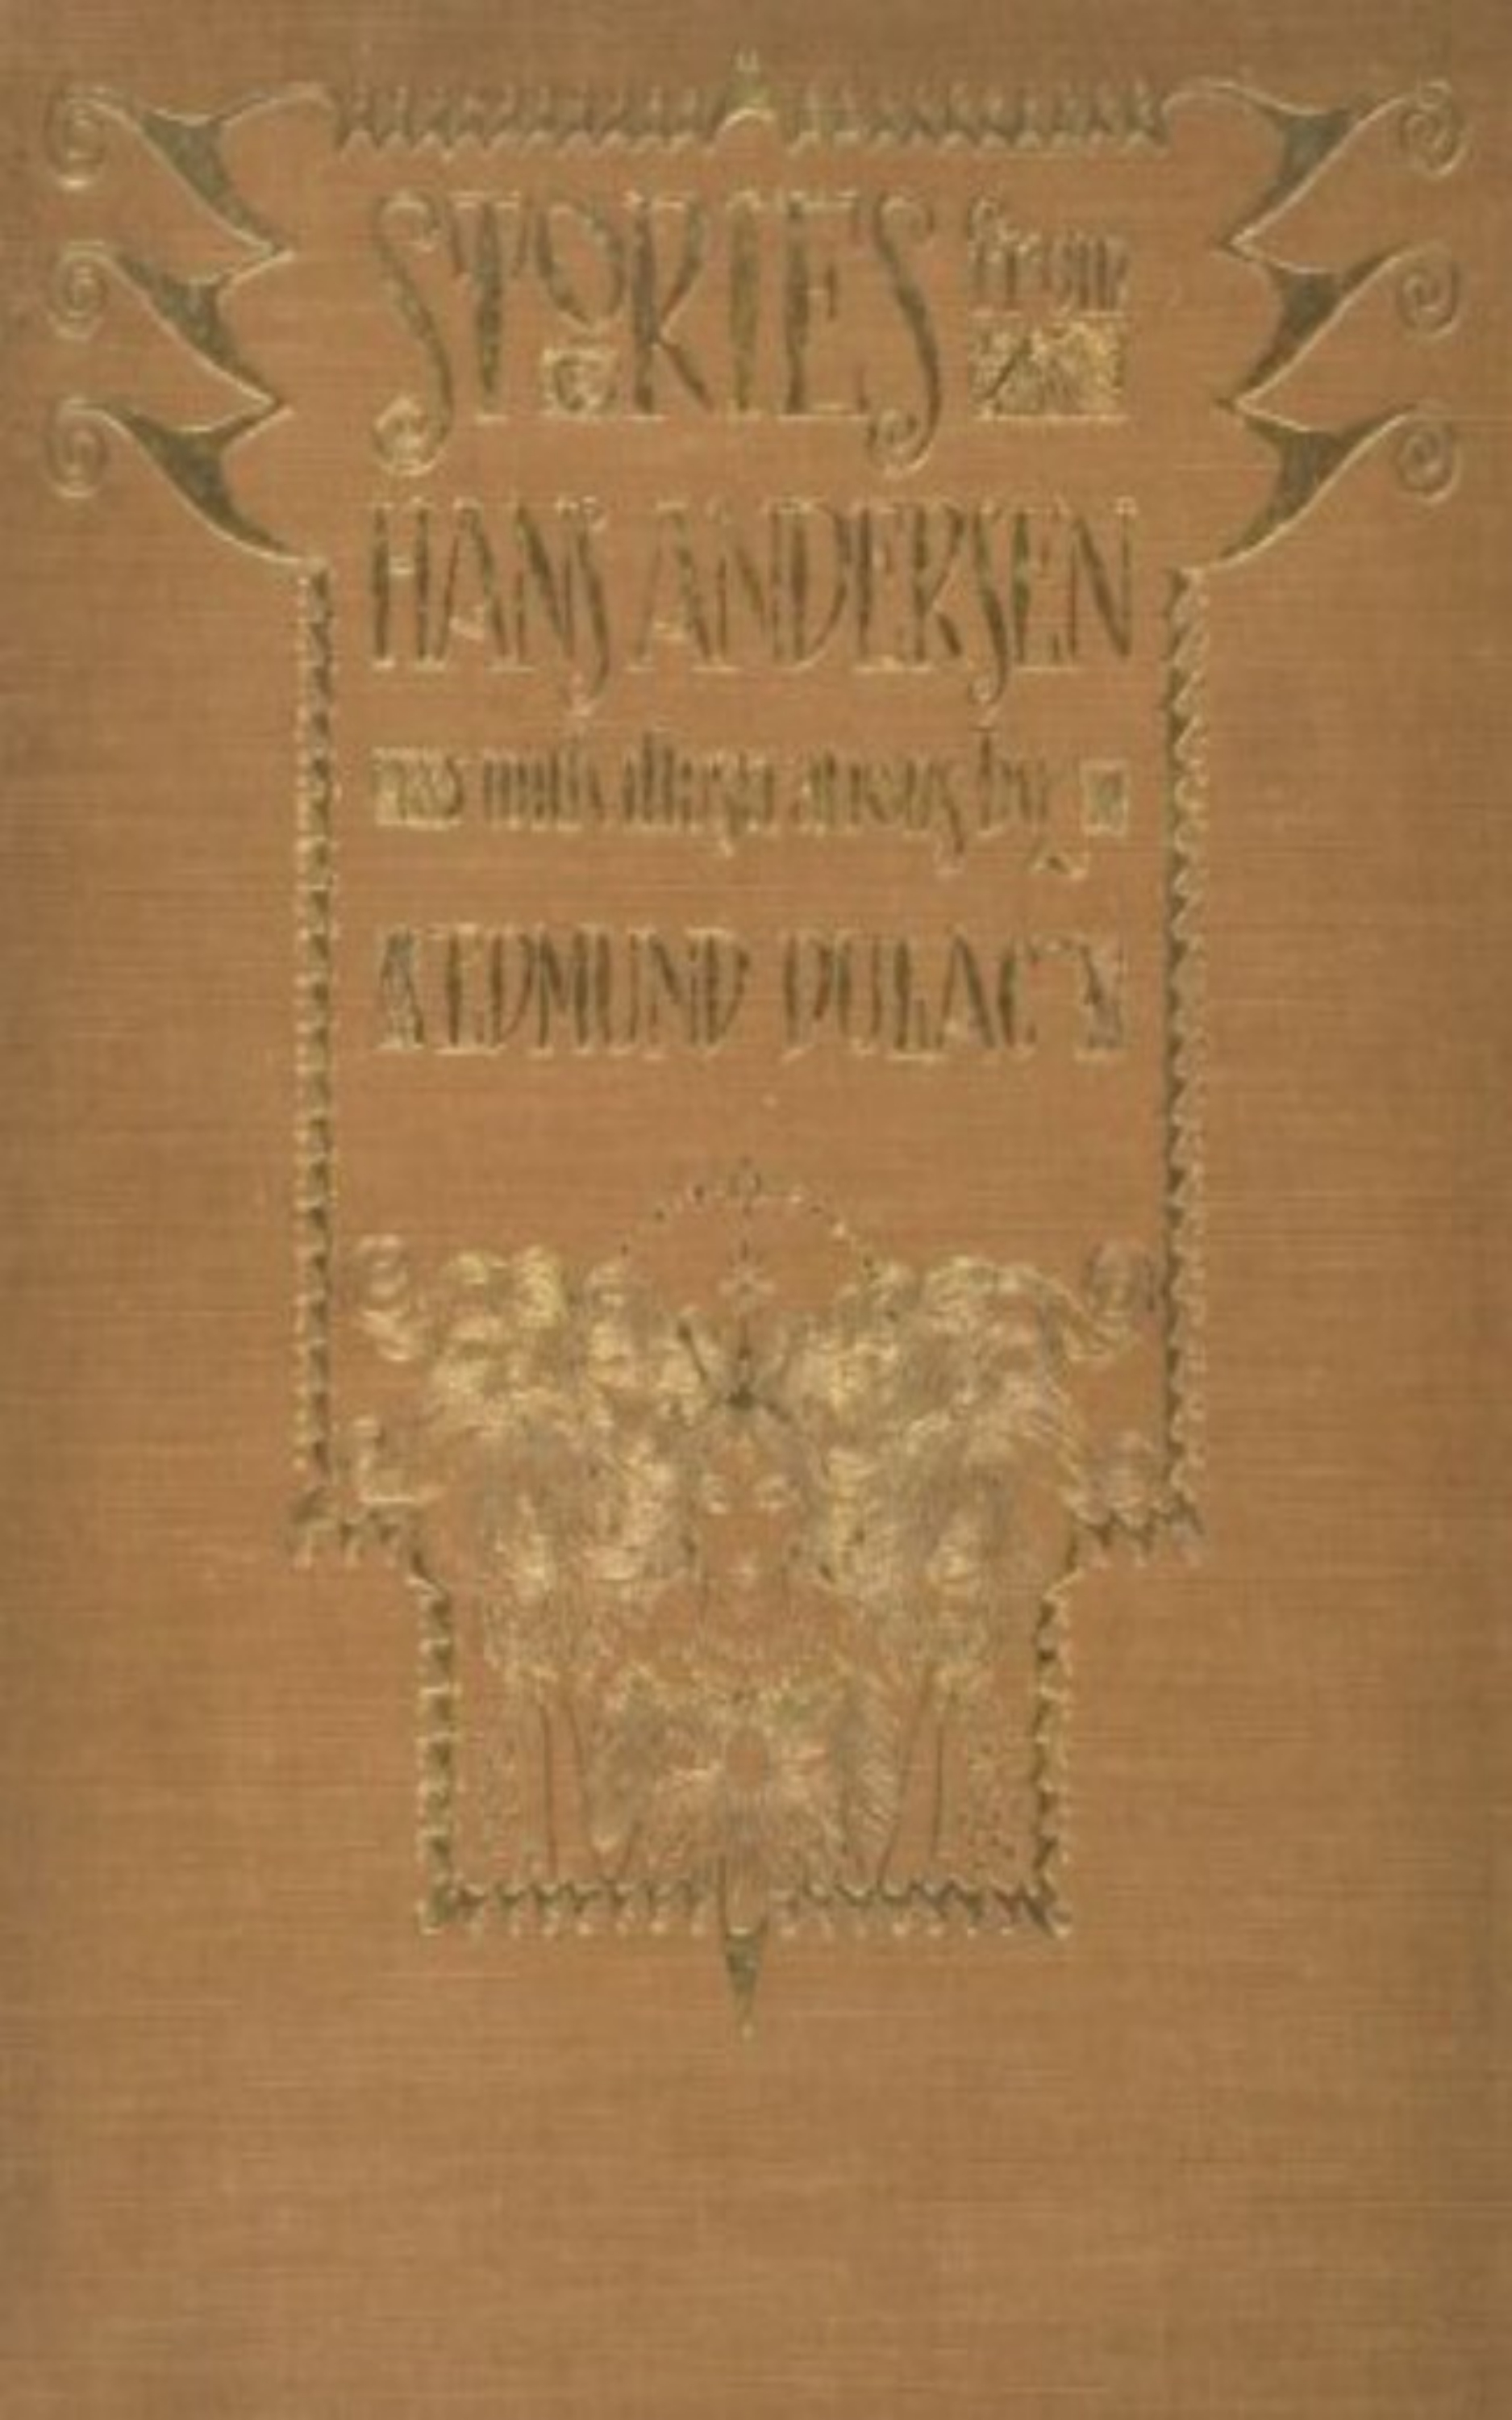 H. C. Andersen Stories from Hans Andersen andersen h c rdr little mermaid isbn 978 1 4095 5590 2